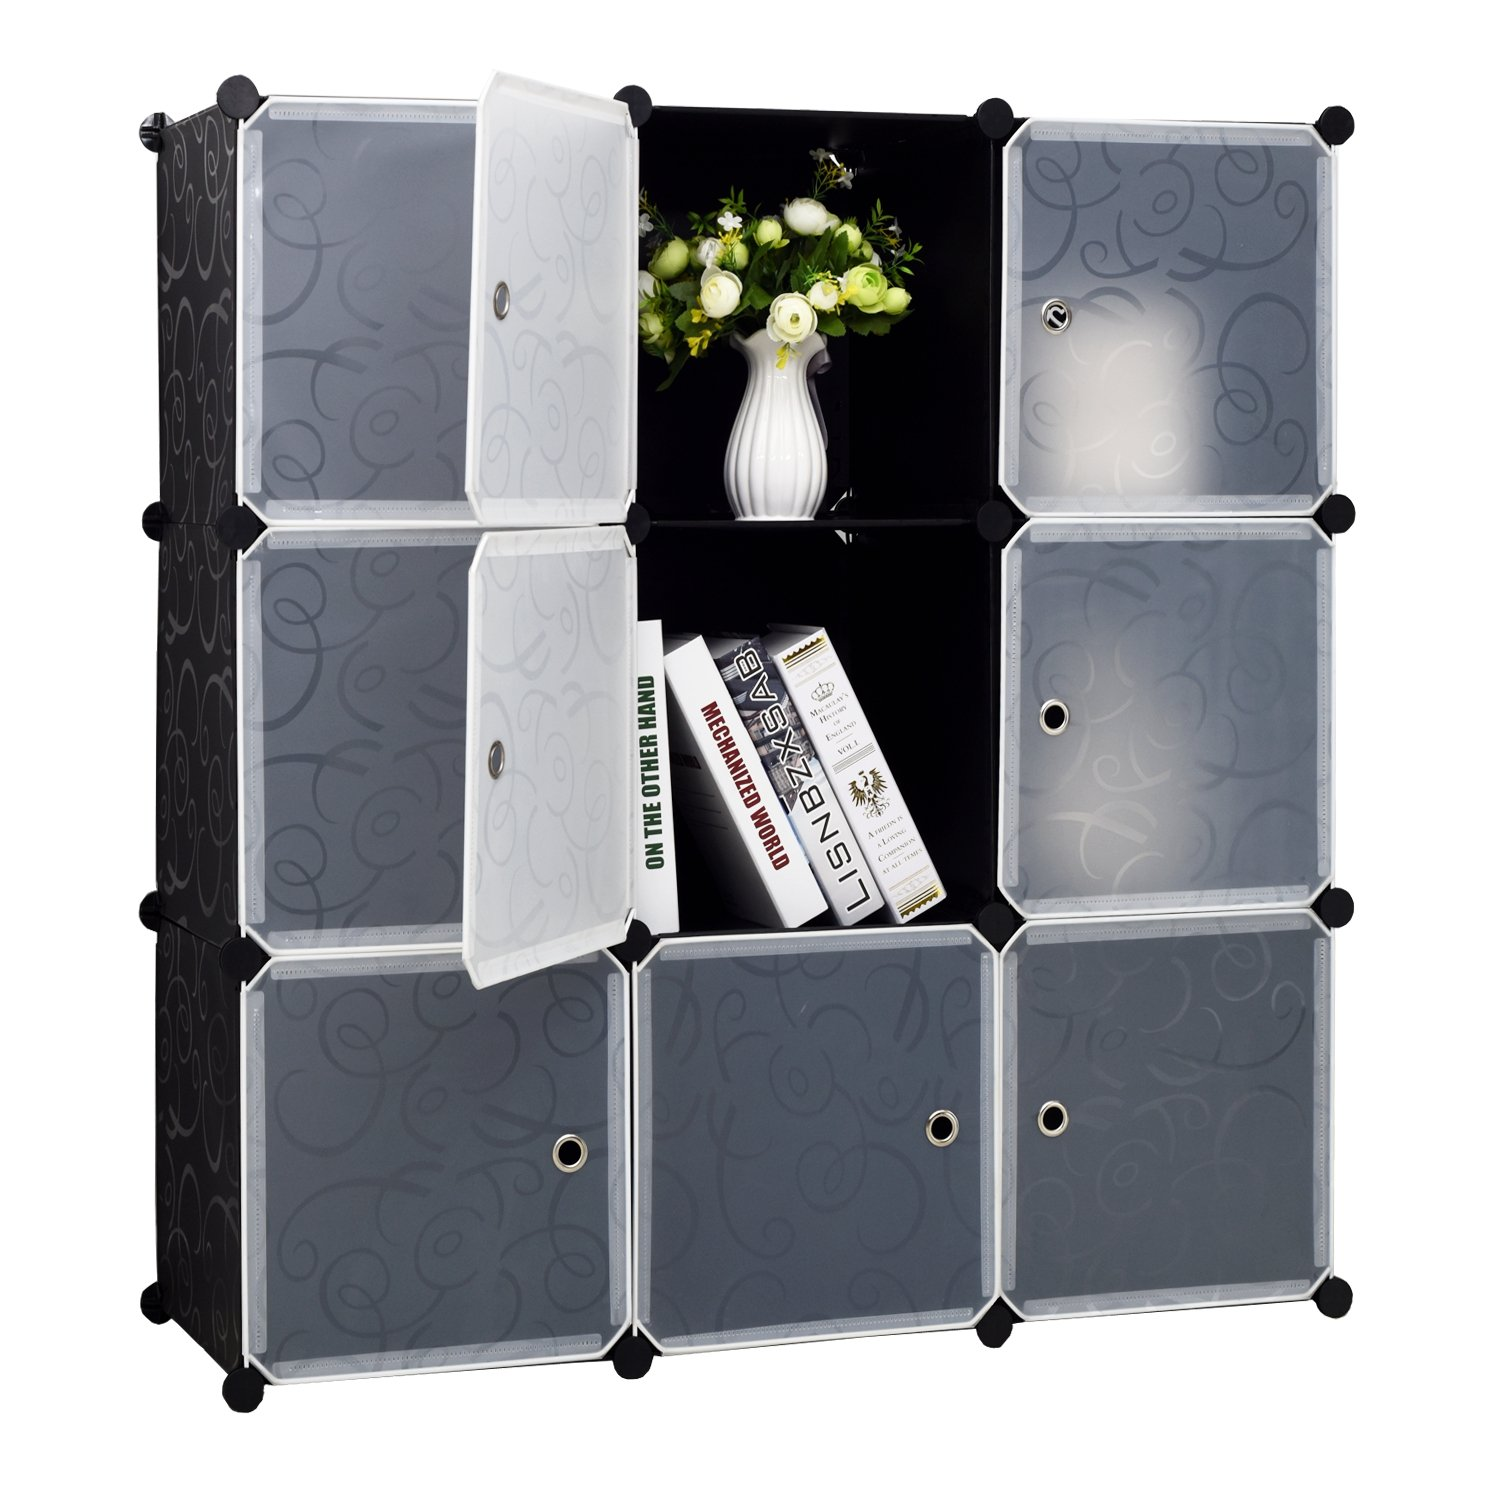 9-Cube Storage DIY Cube Organizer Cabinet 3-Tier Bookcase Storage Cube Organizer Closet with Door